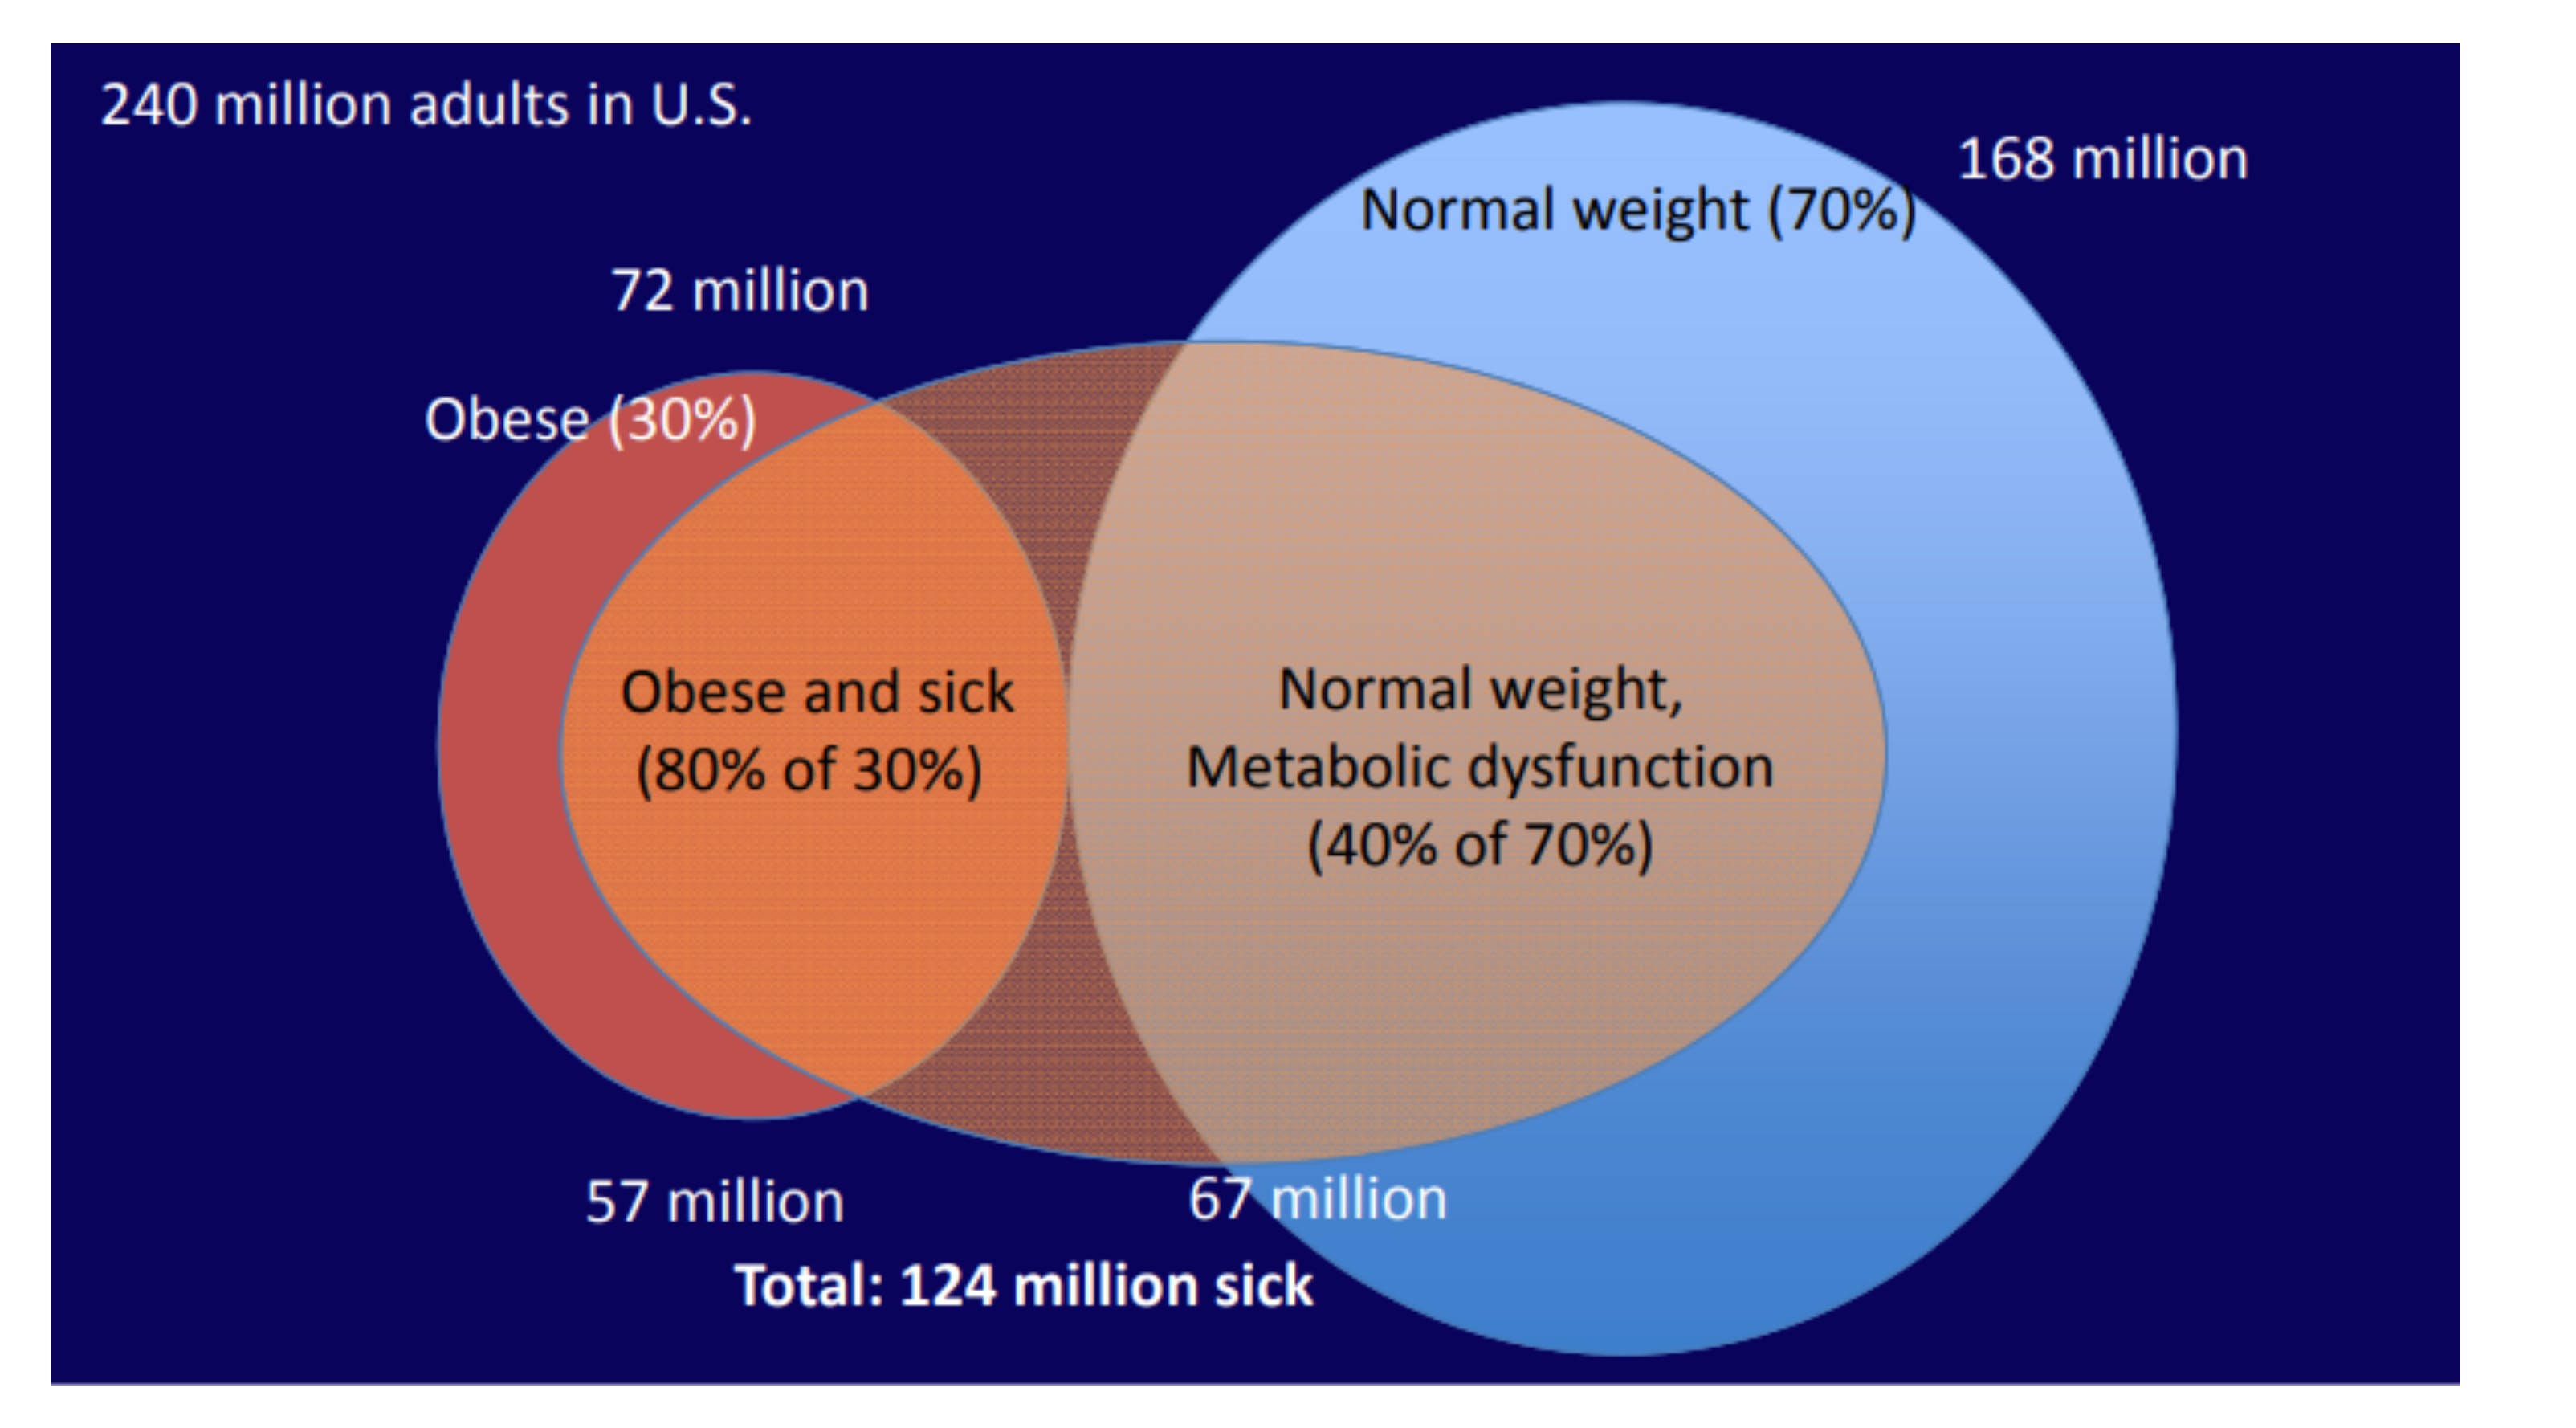 Obese and sick vs normal weight